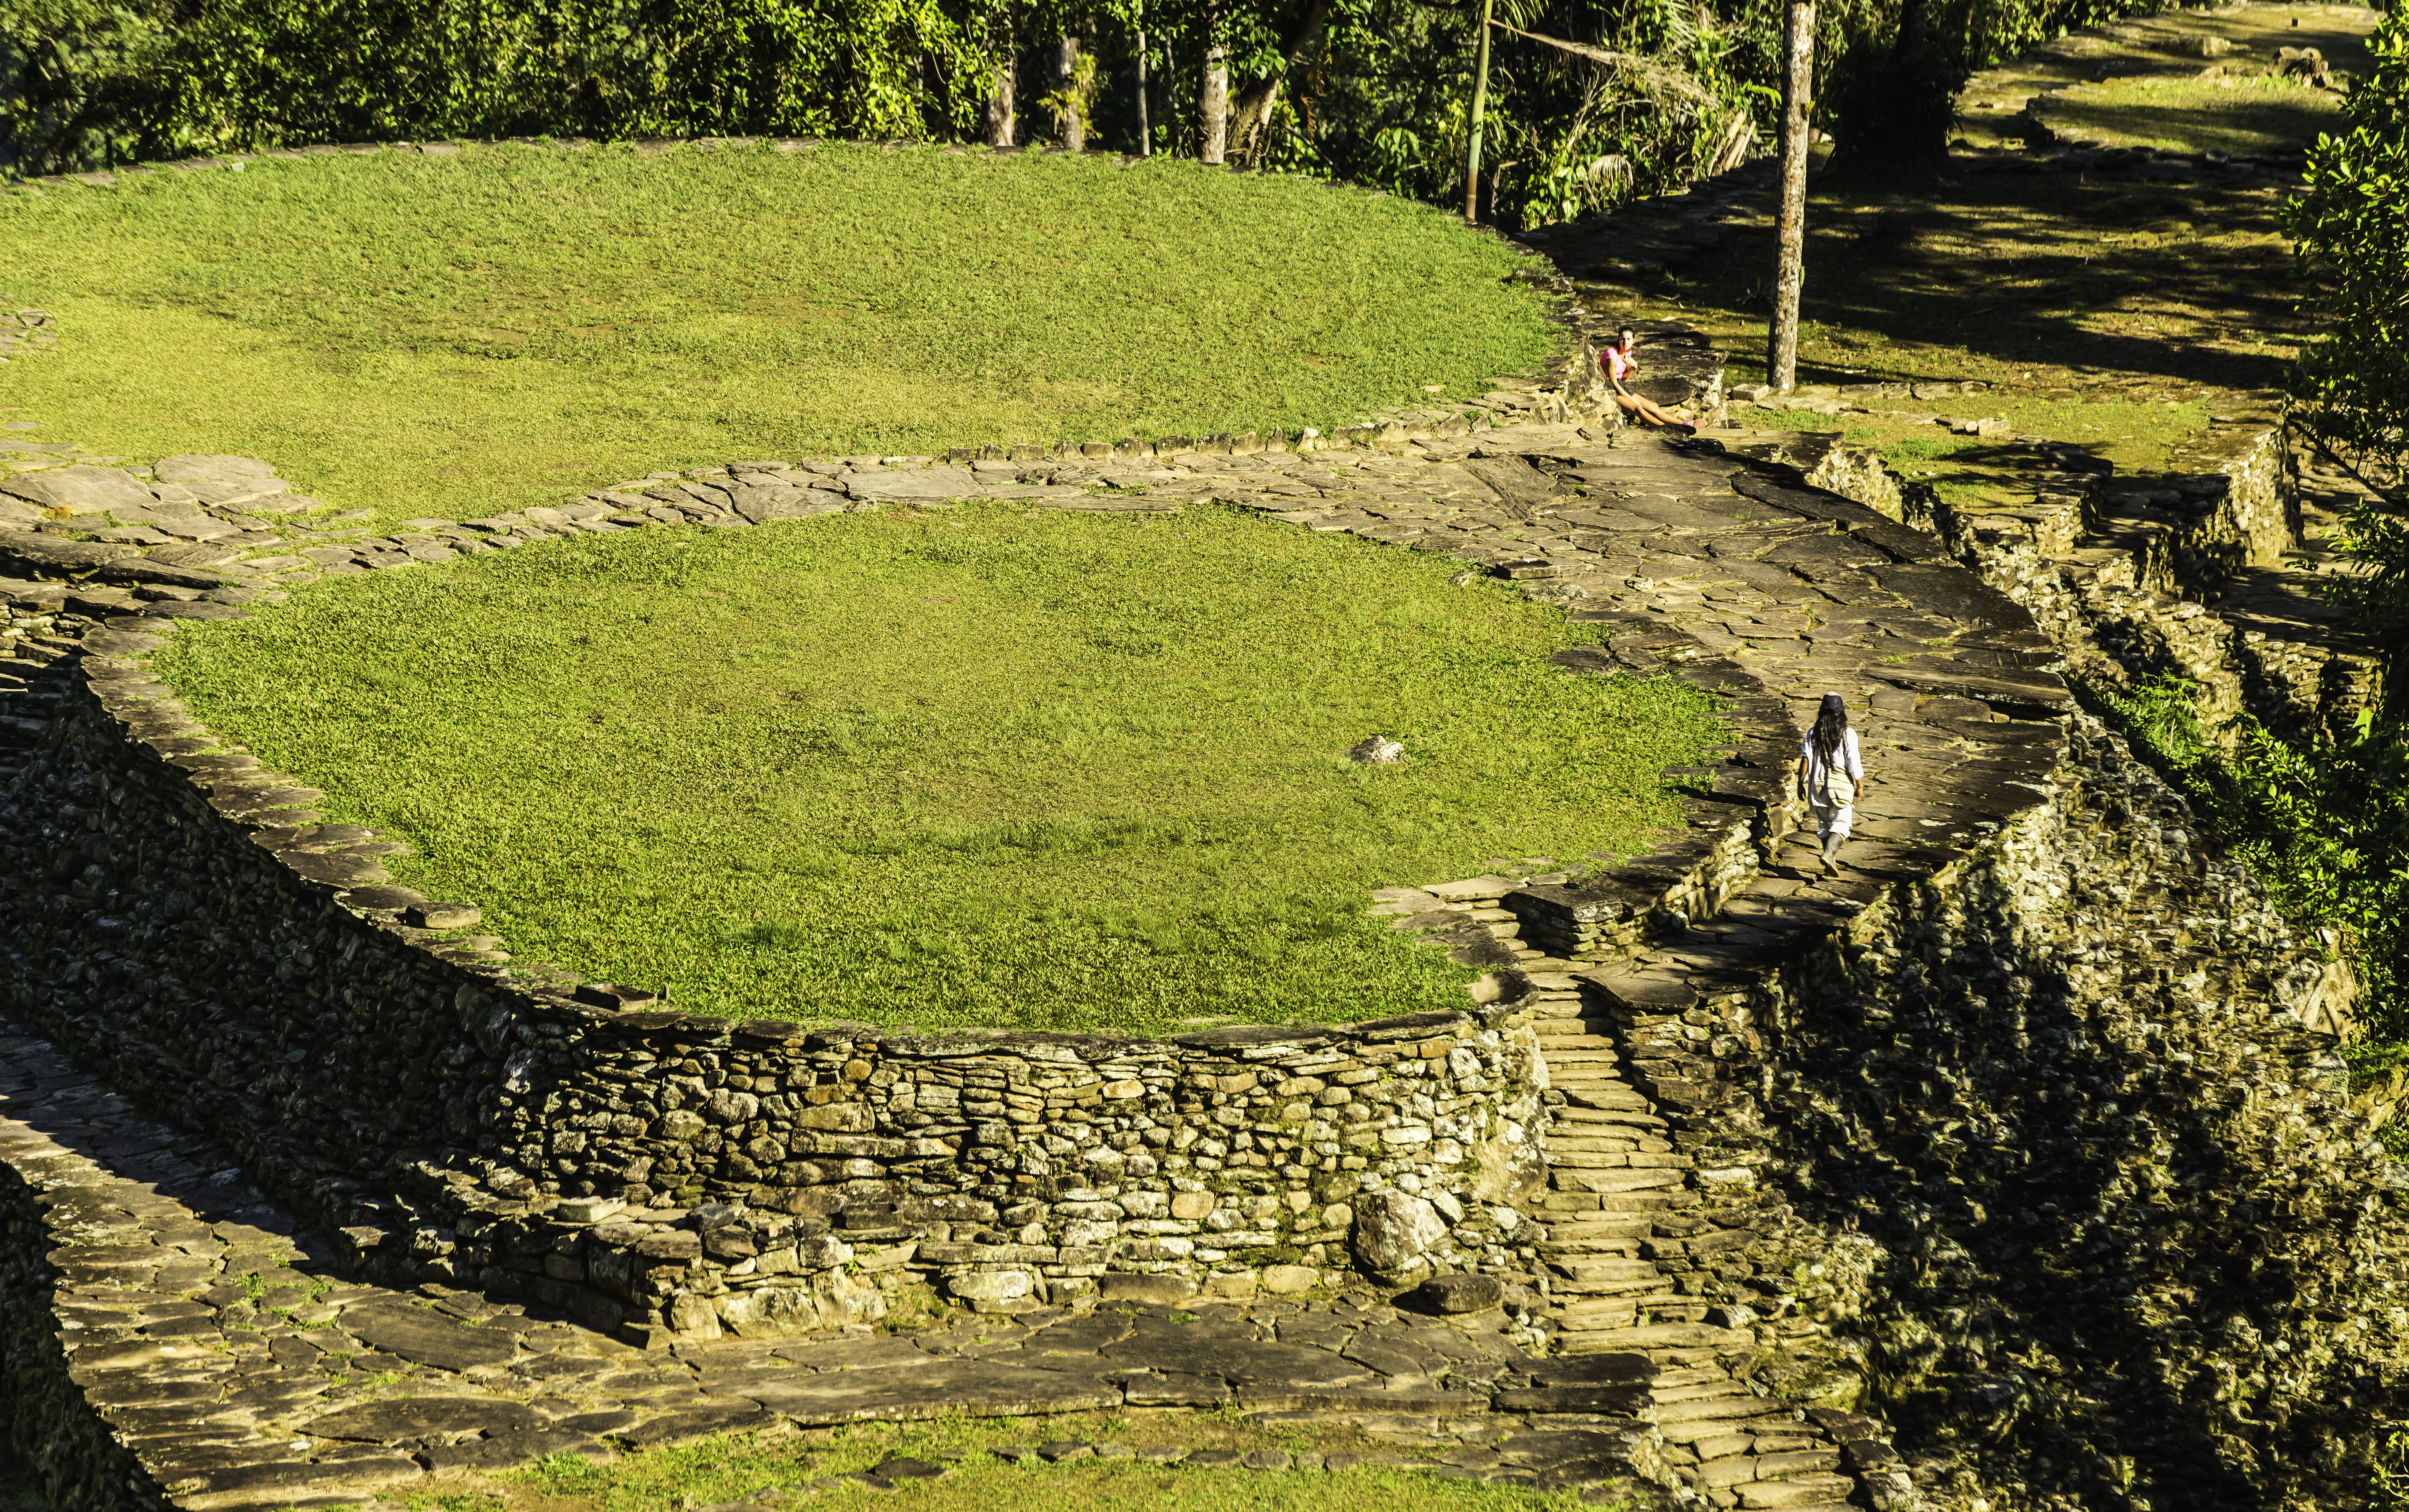 A boy from a nearby village waking along the ruins of Ciudad Perdida